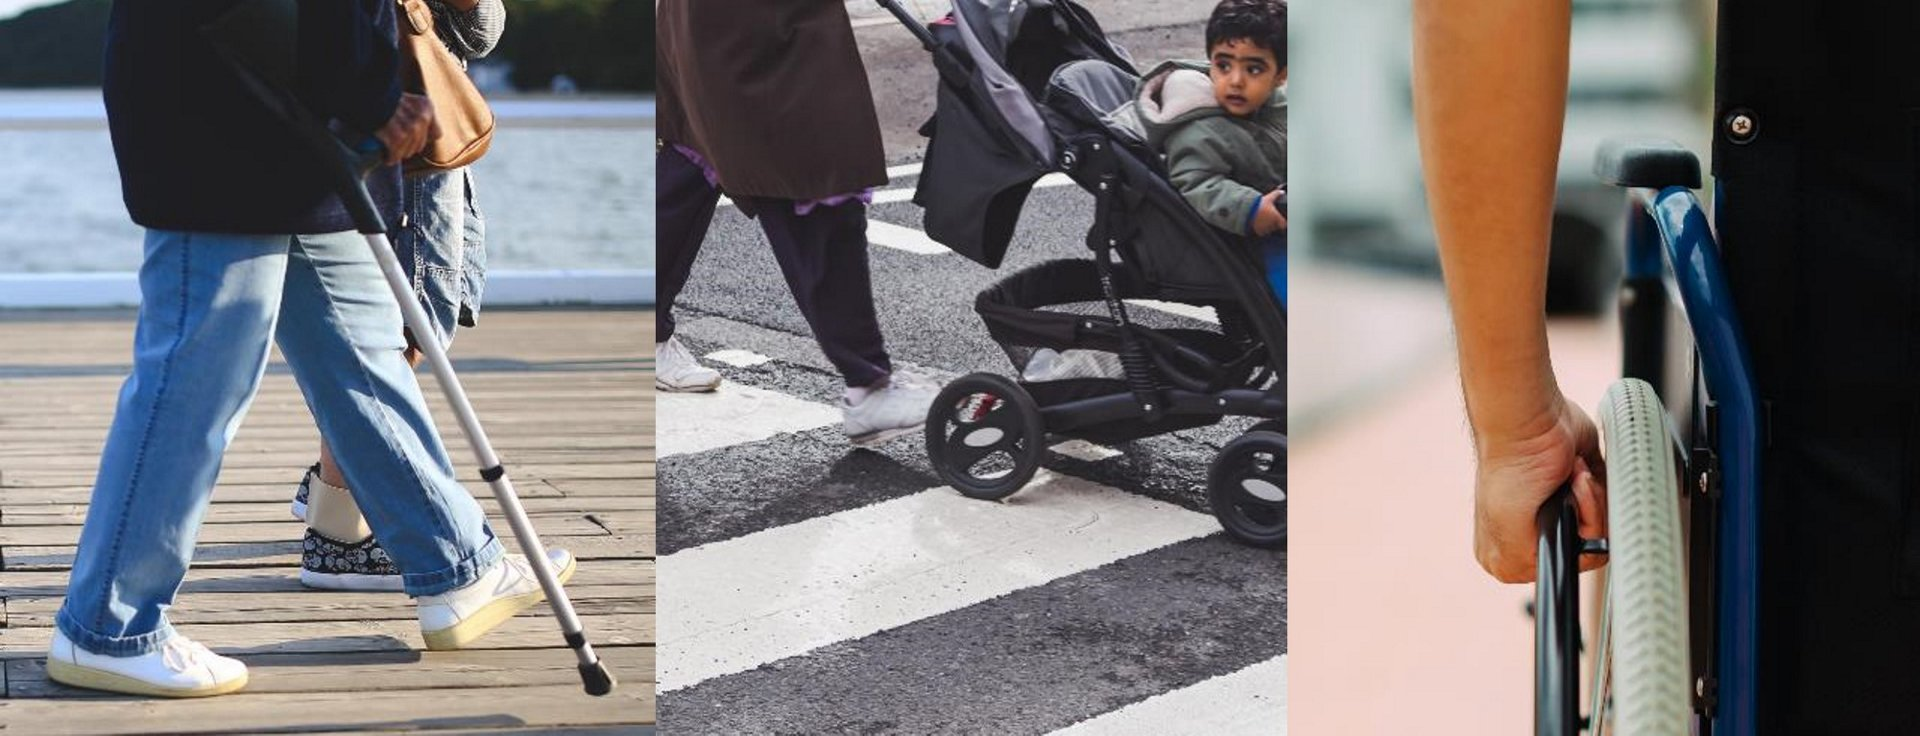 Improving mobility for everyone